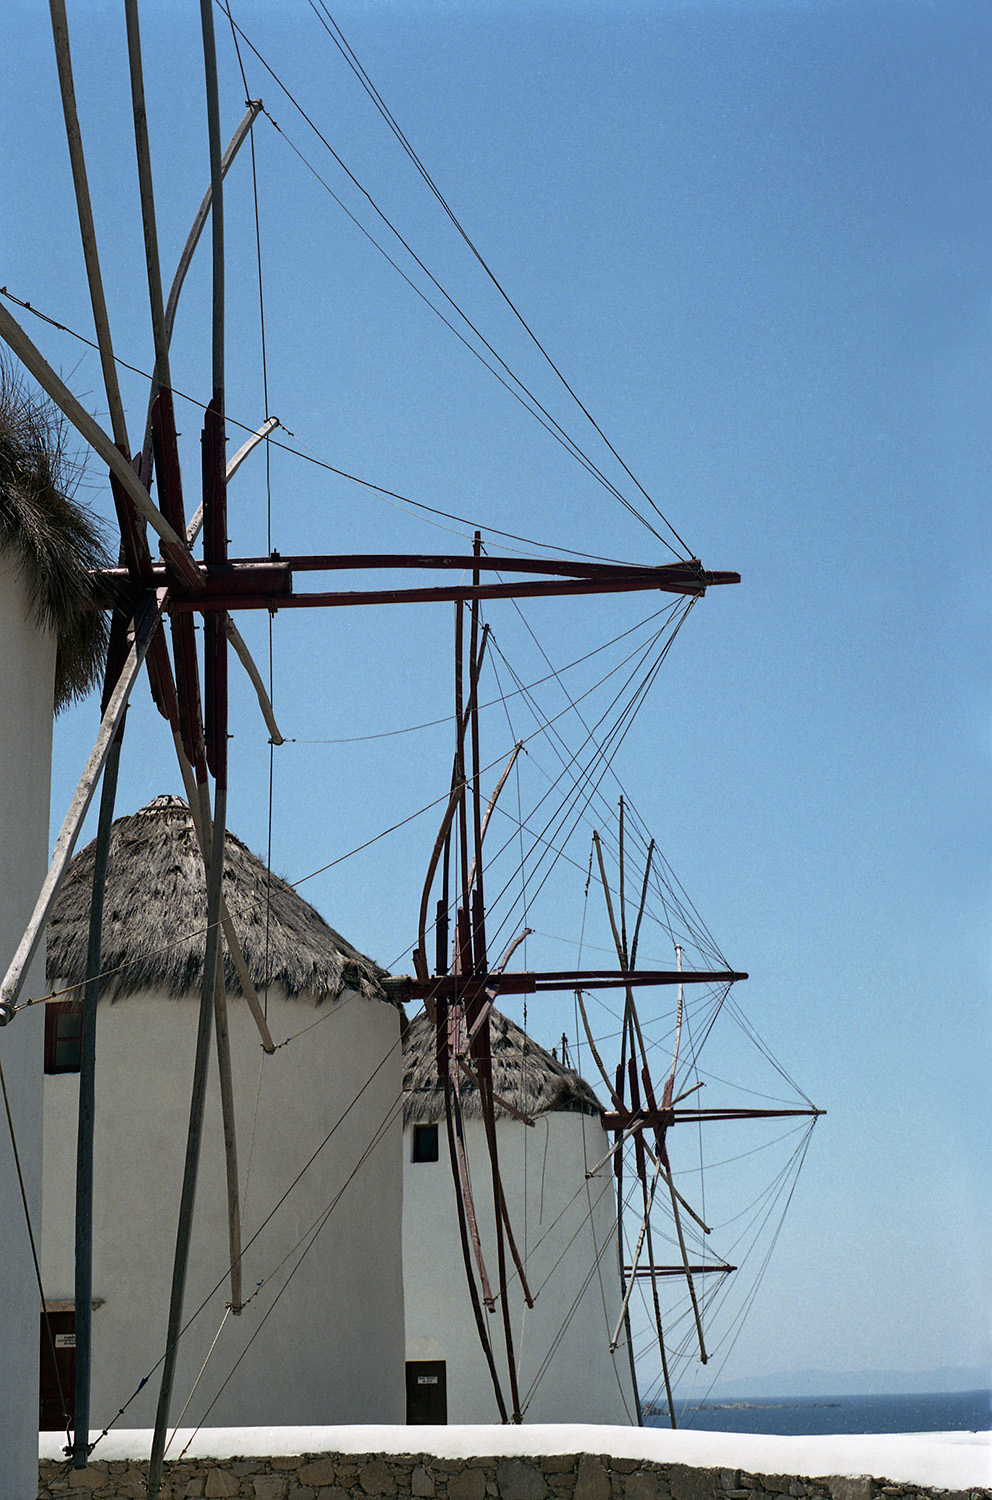 Greece / Mykonos / The Windmills